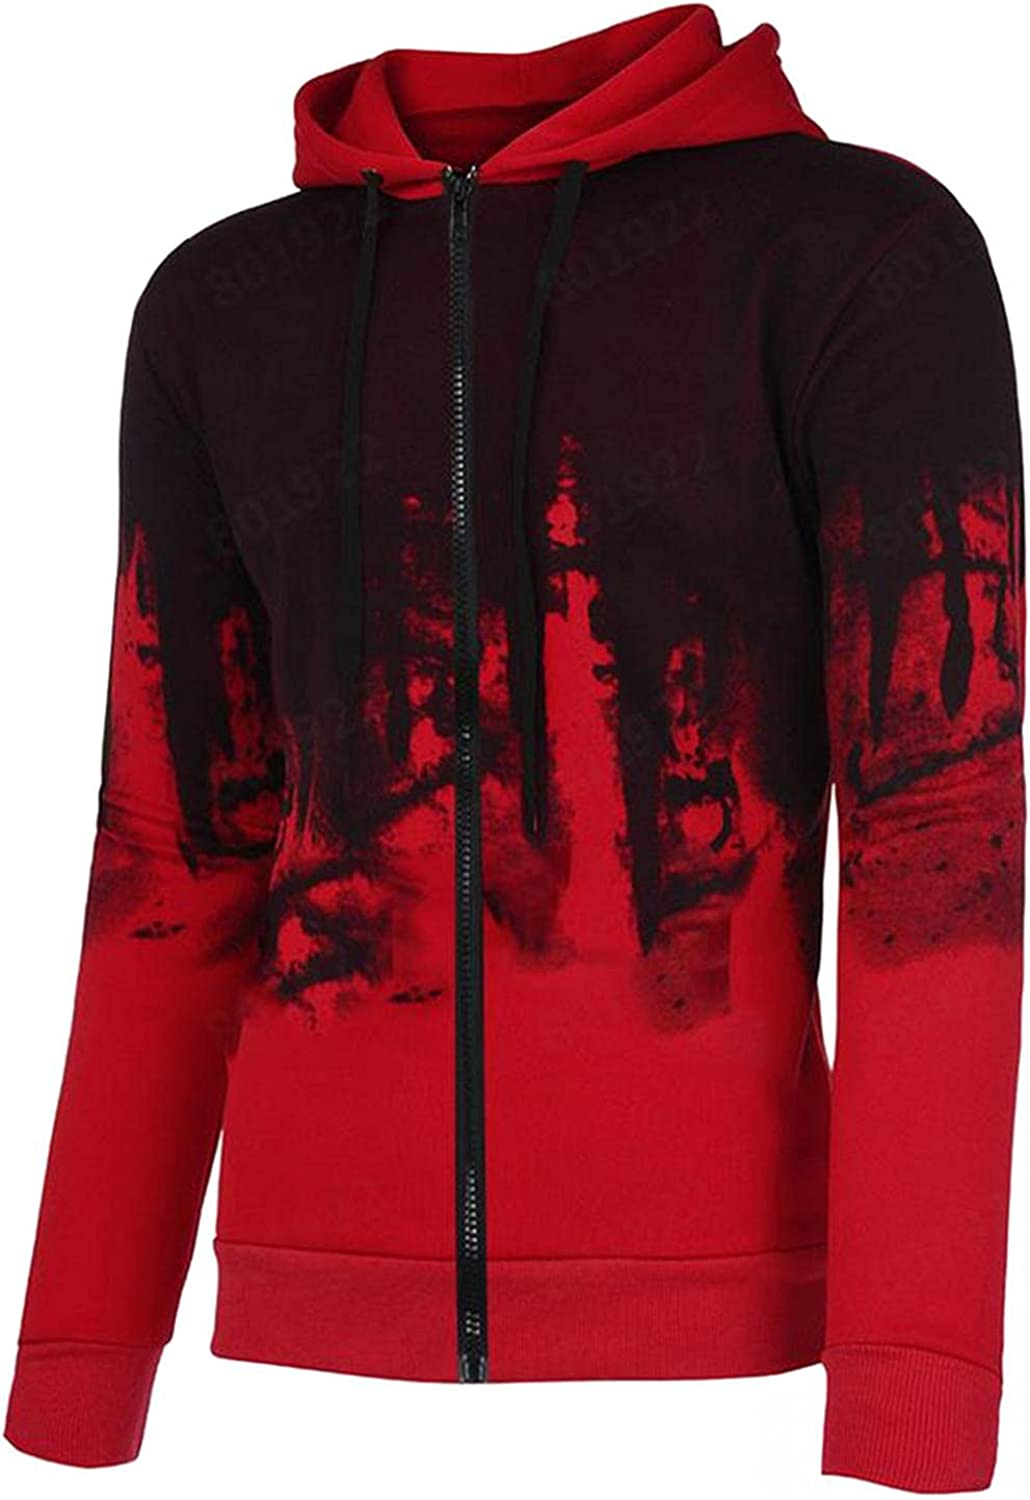 Qsctys Mens Sweatshirts Hoodies Zip up Casual Hooded Jackets & Coats Cotton Blend Fashion Graphic Lightweight Pullover Zipper